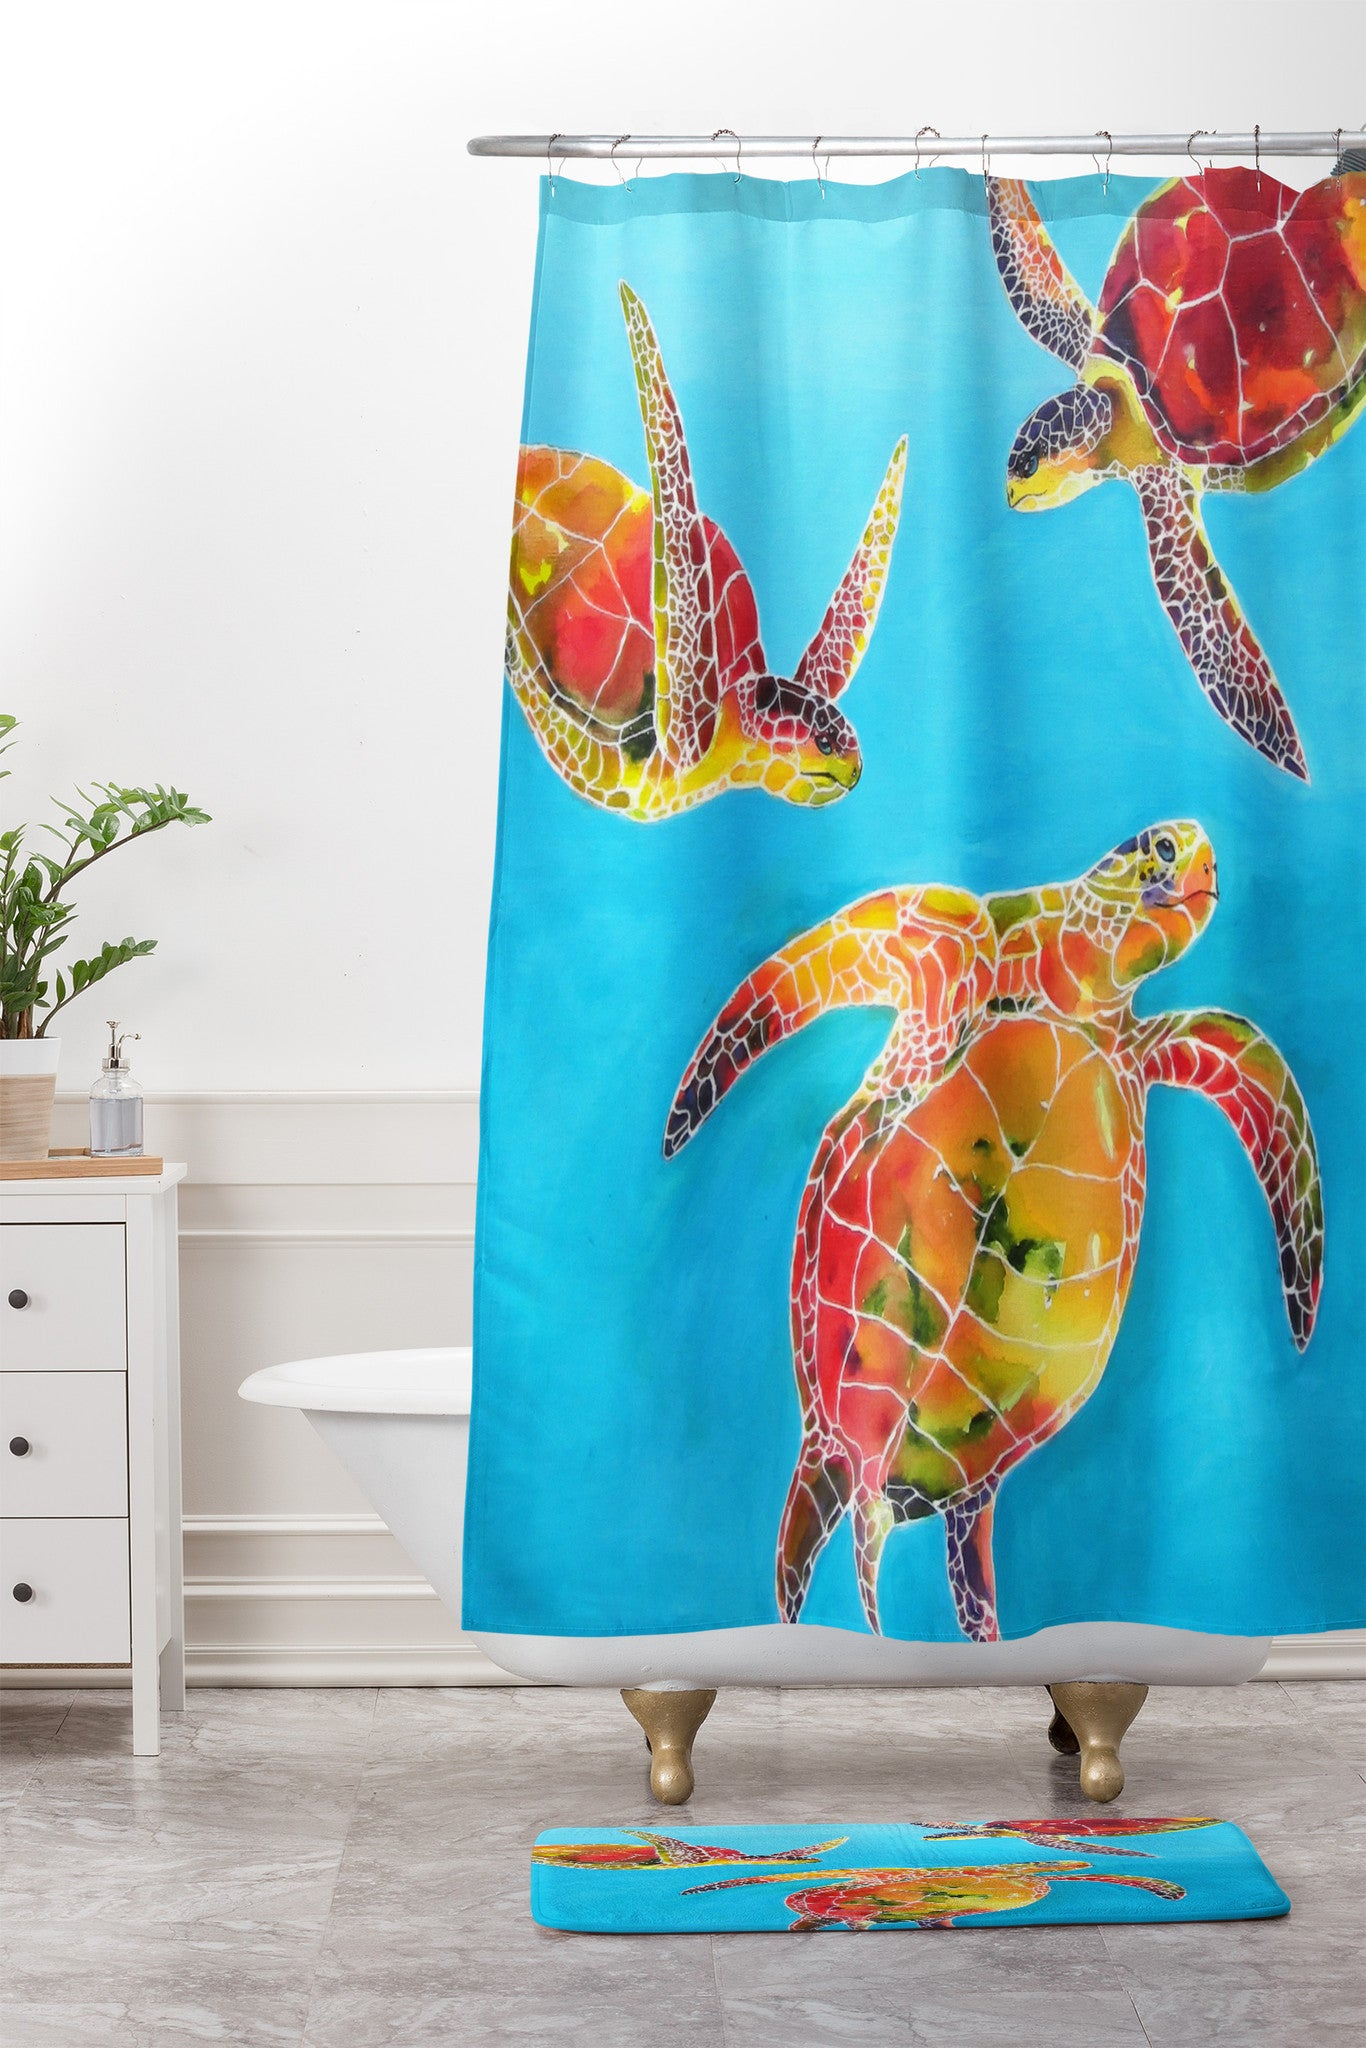 Tie Dye Sea Turtles Shower Curtain And Mat By Clara Nilles